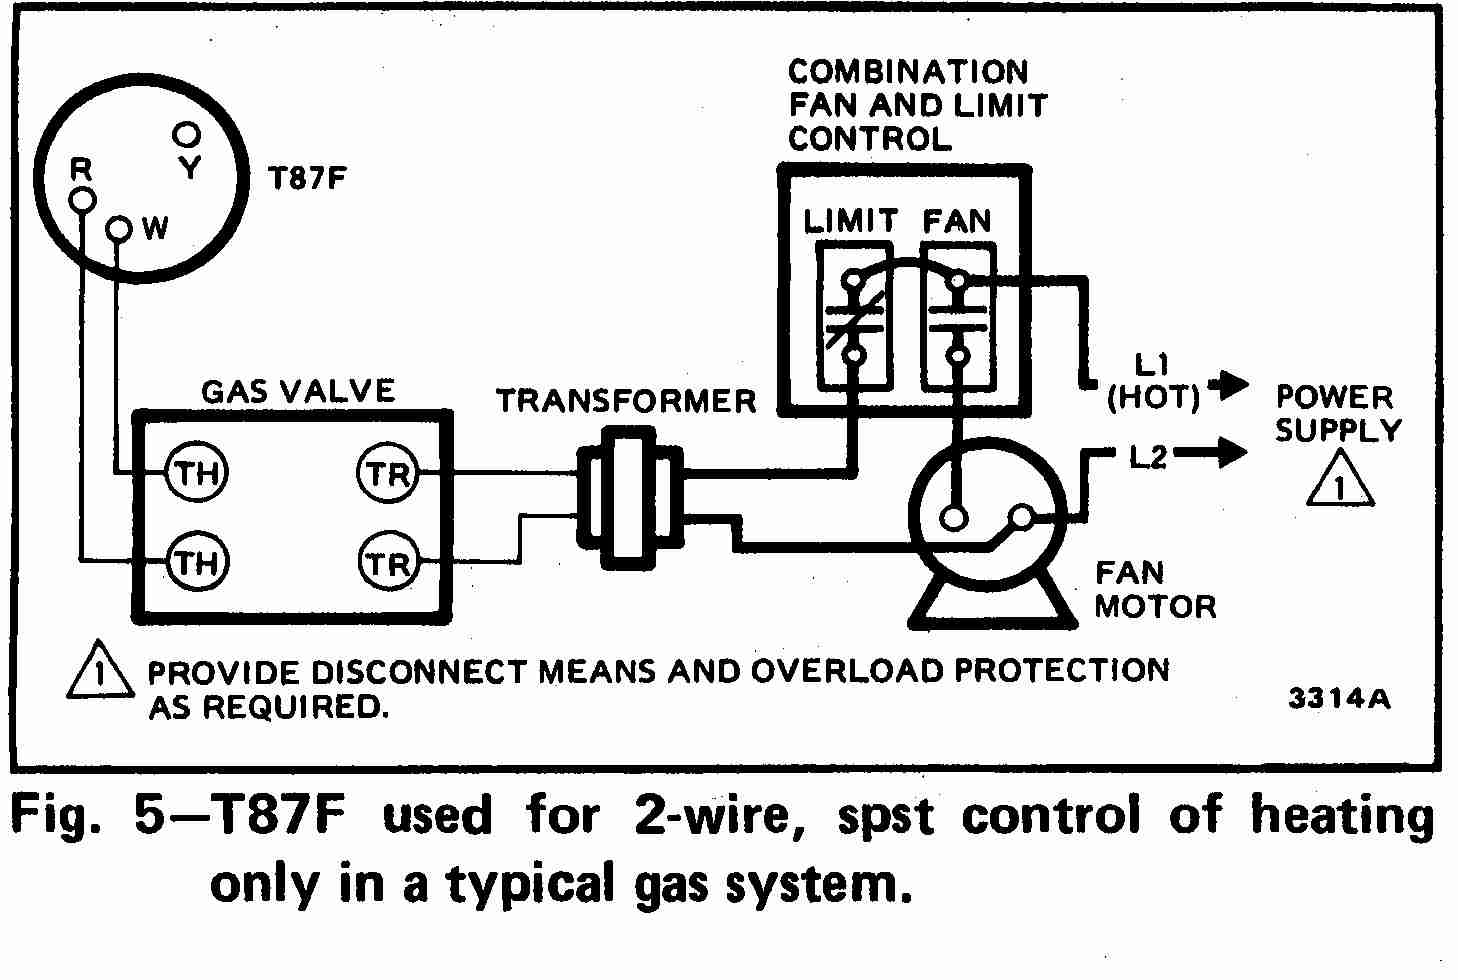 Hvac Control Wiring Diagram Thermostat Diagrams Scematic Tappan Heat Pump Room For Systems Nordyne